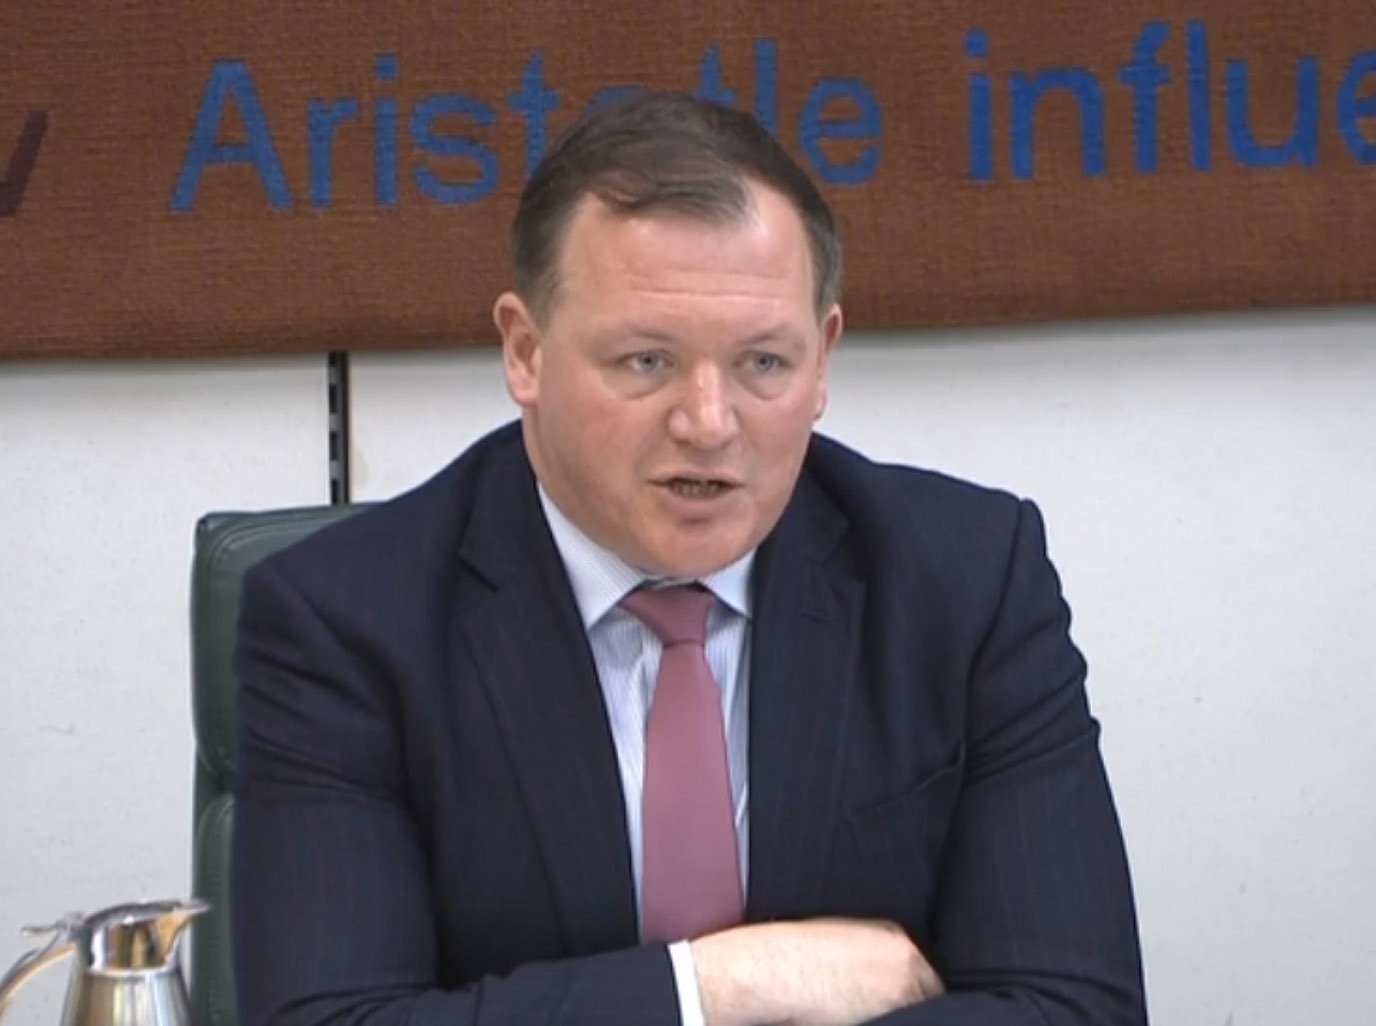 Damian Collins, chairman of the House of Commons Digital, Culture, Media and Sport Committee, speaks at a hearing in Portcullis House, London, where he repeated his call for Facebook founder Mark Zuckerberg to give evidence to the committee's inquiry into fake news.